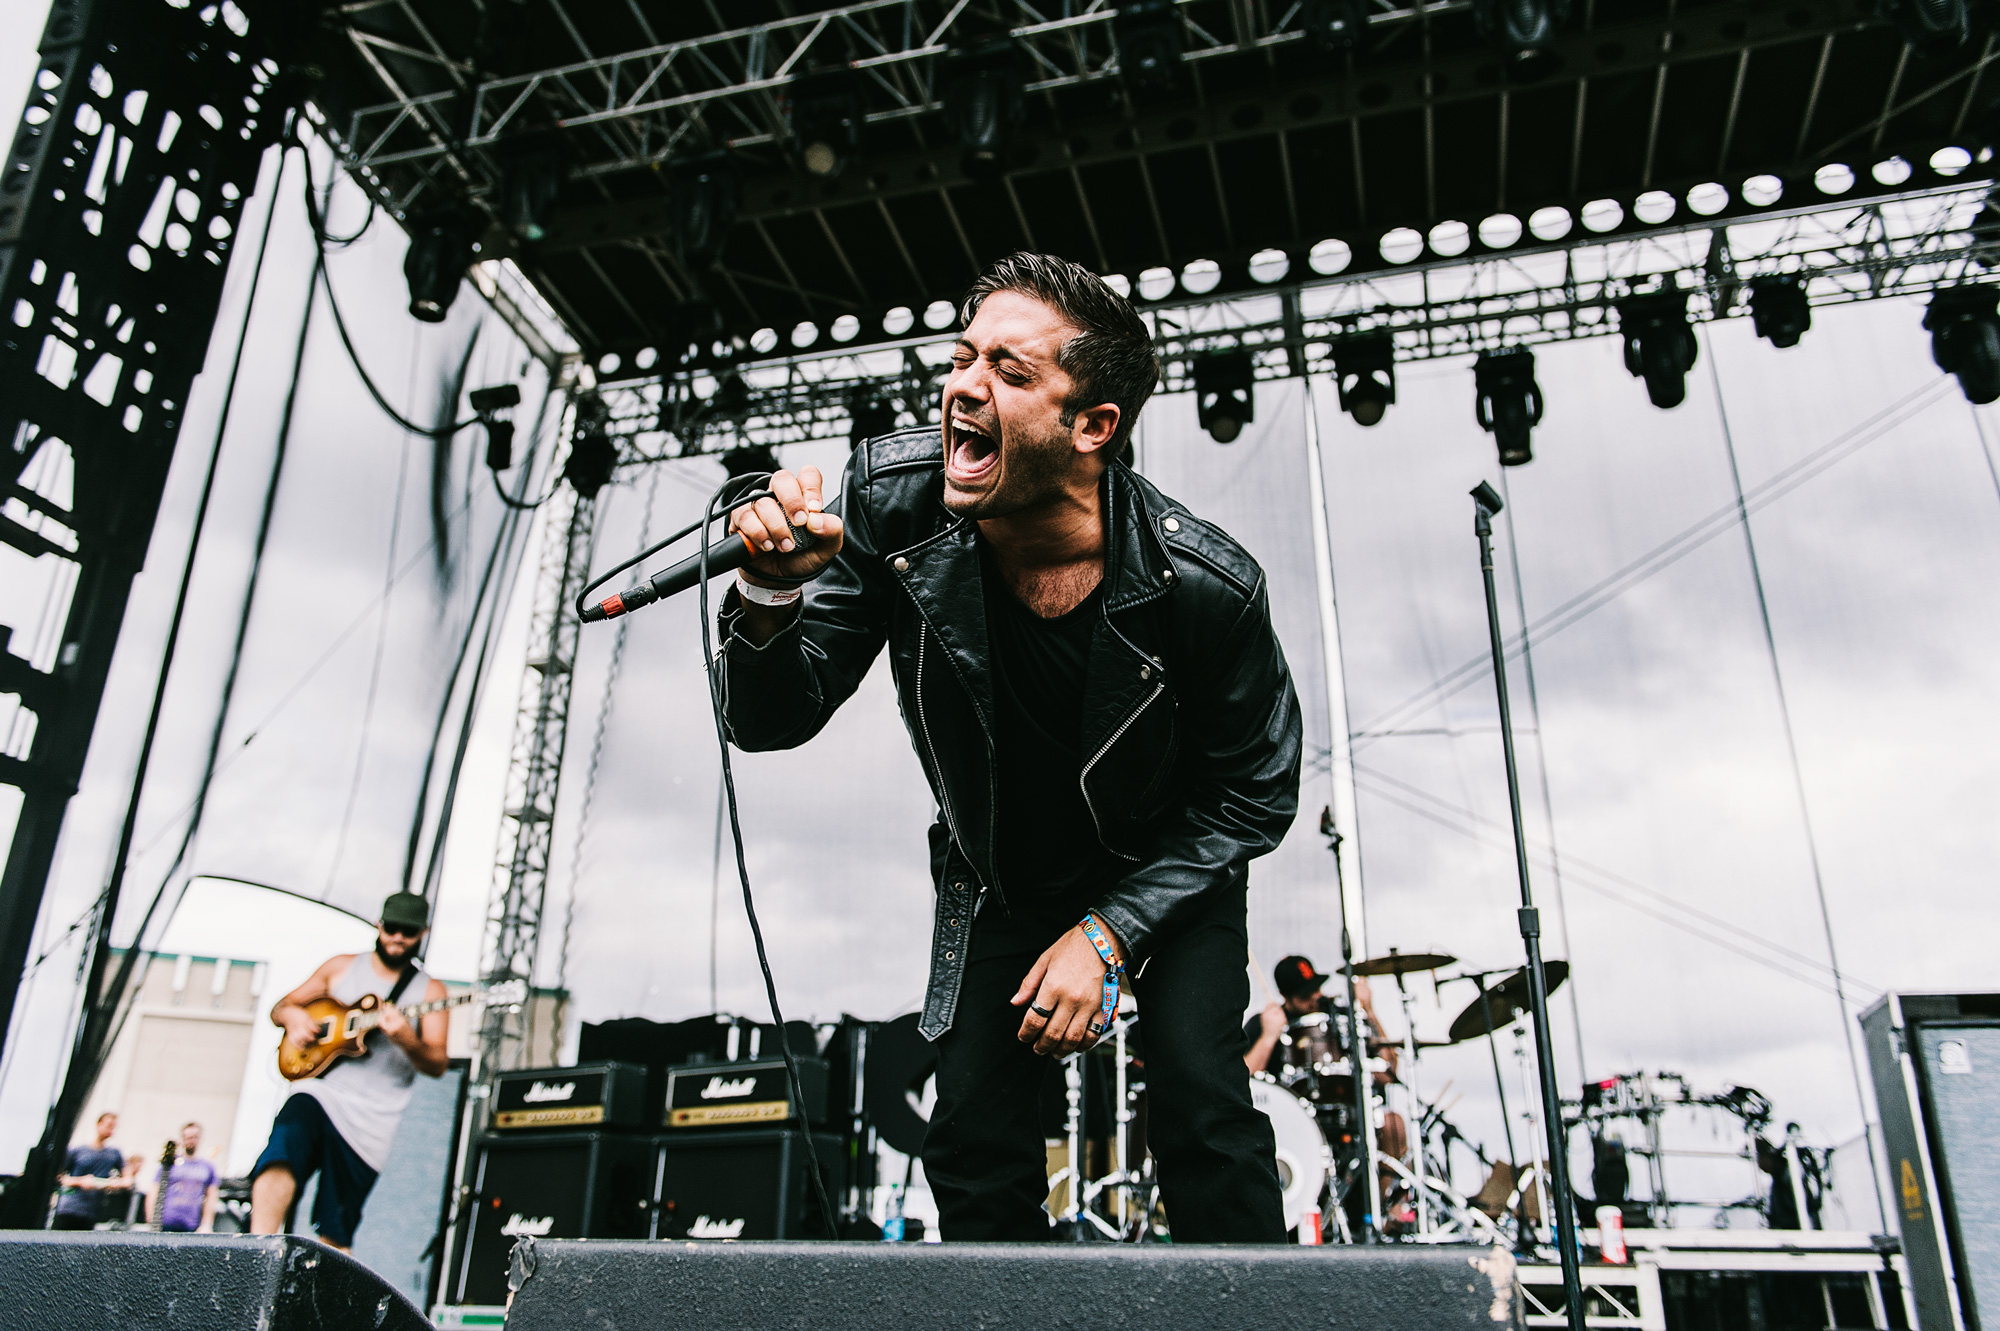 Glassjaw at Riot Fest (2014)  Nikon D700 with Nikon 24-70mm f/2.8. Exposure: 1/1250 second, f/3.5, ISO 200